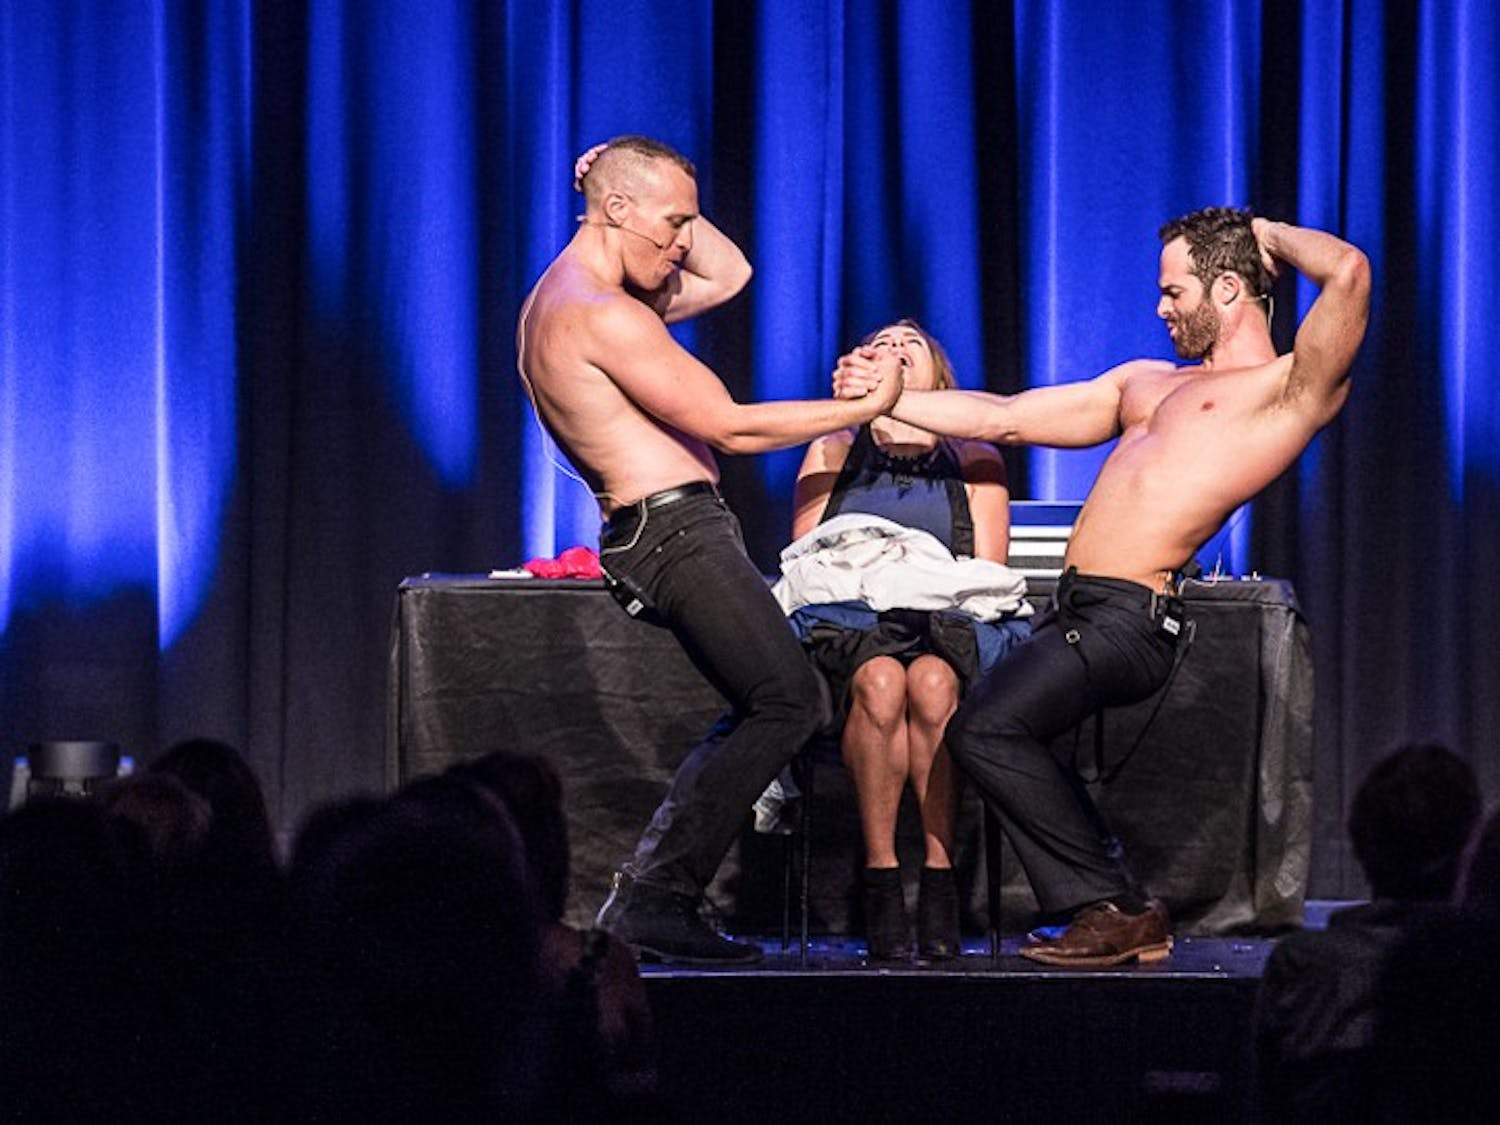 Two Australian magicians, Mike Tyler and Christopher Wayne, star in the world-renowned magic show, 'The Naked Magicians.'